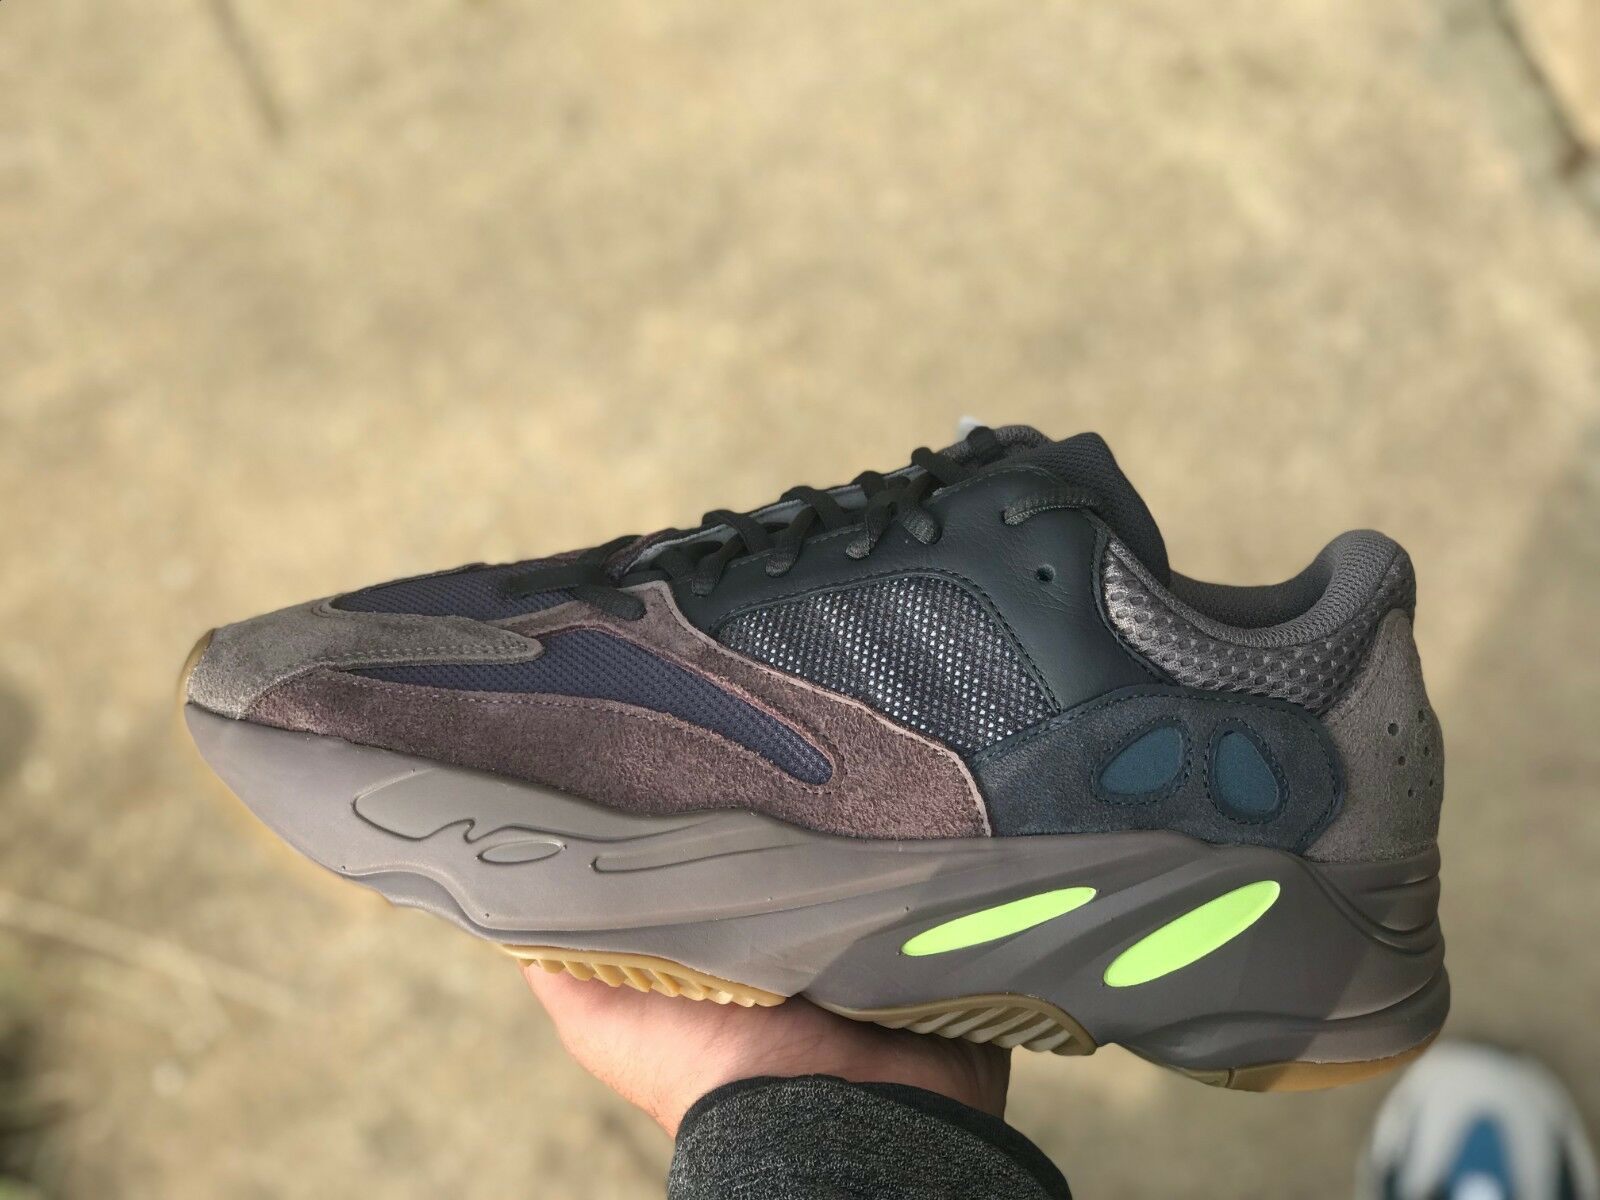 Yeezy Boost 700 Mauve Size US 11 Brand New DS Confirmed Order